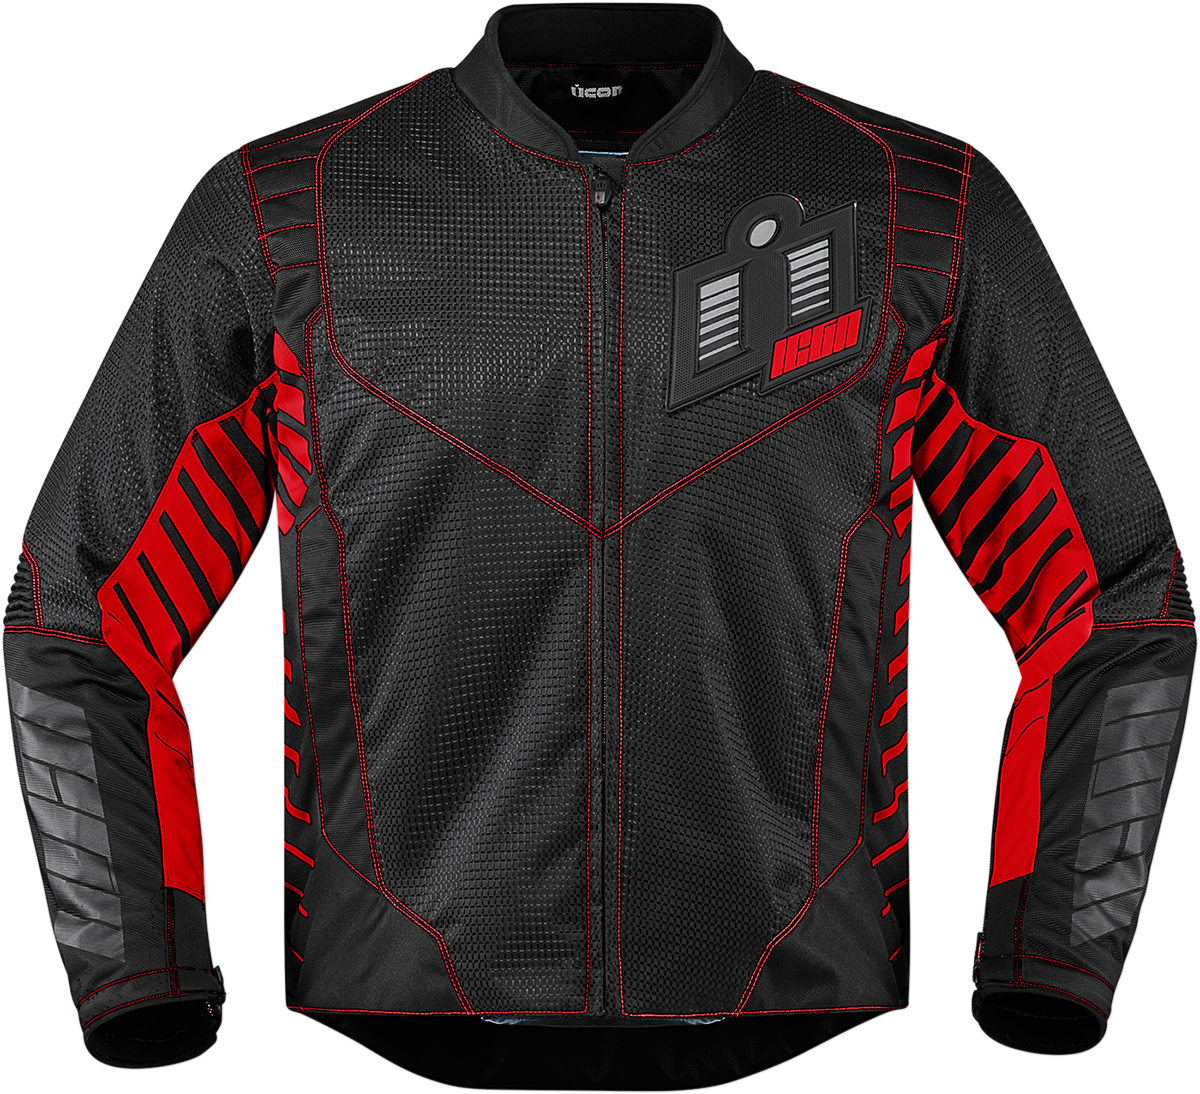 Mens Icon Red Textile Wireform Motorcycle Riding Street Racing Jacket Harley